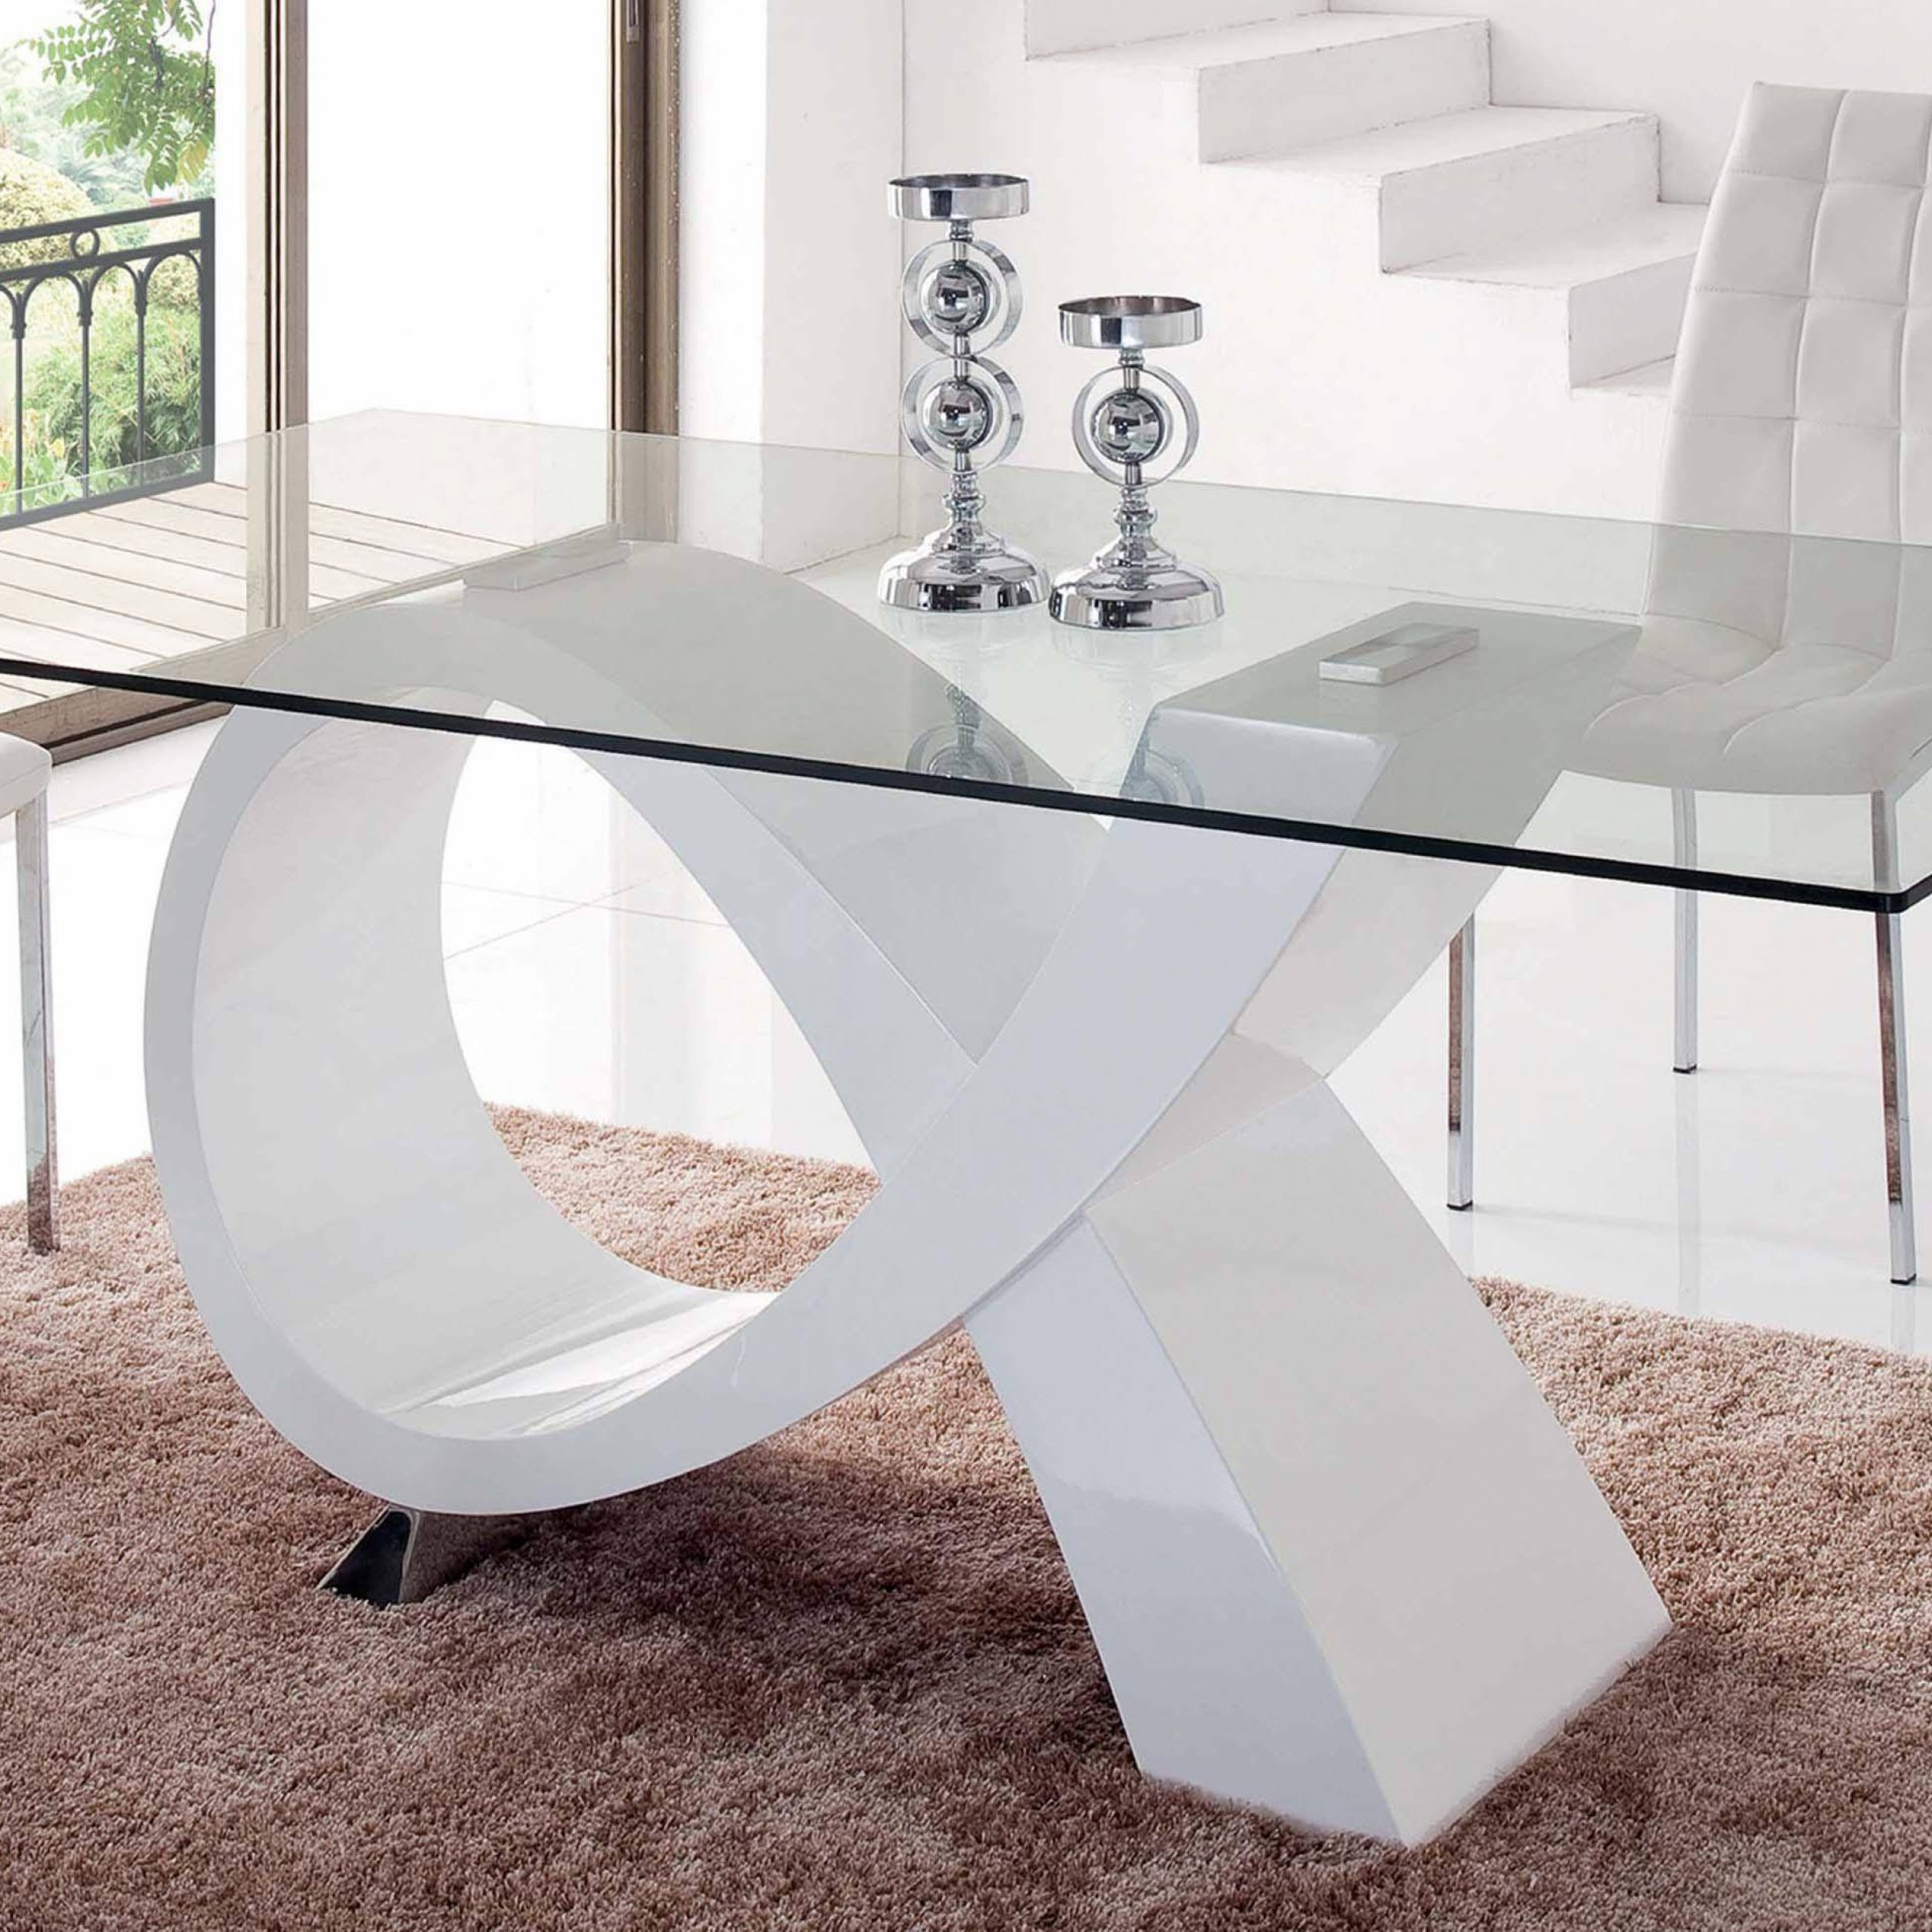 Modern Rectangular Glass Top High Gloss Finish White Dining With Regard To Most Recently Released Rectangular Glass Top Dining Tables (View 8 of 25)